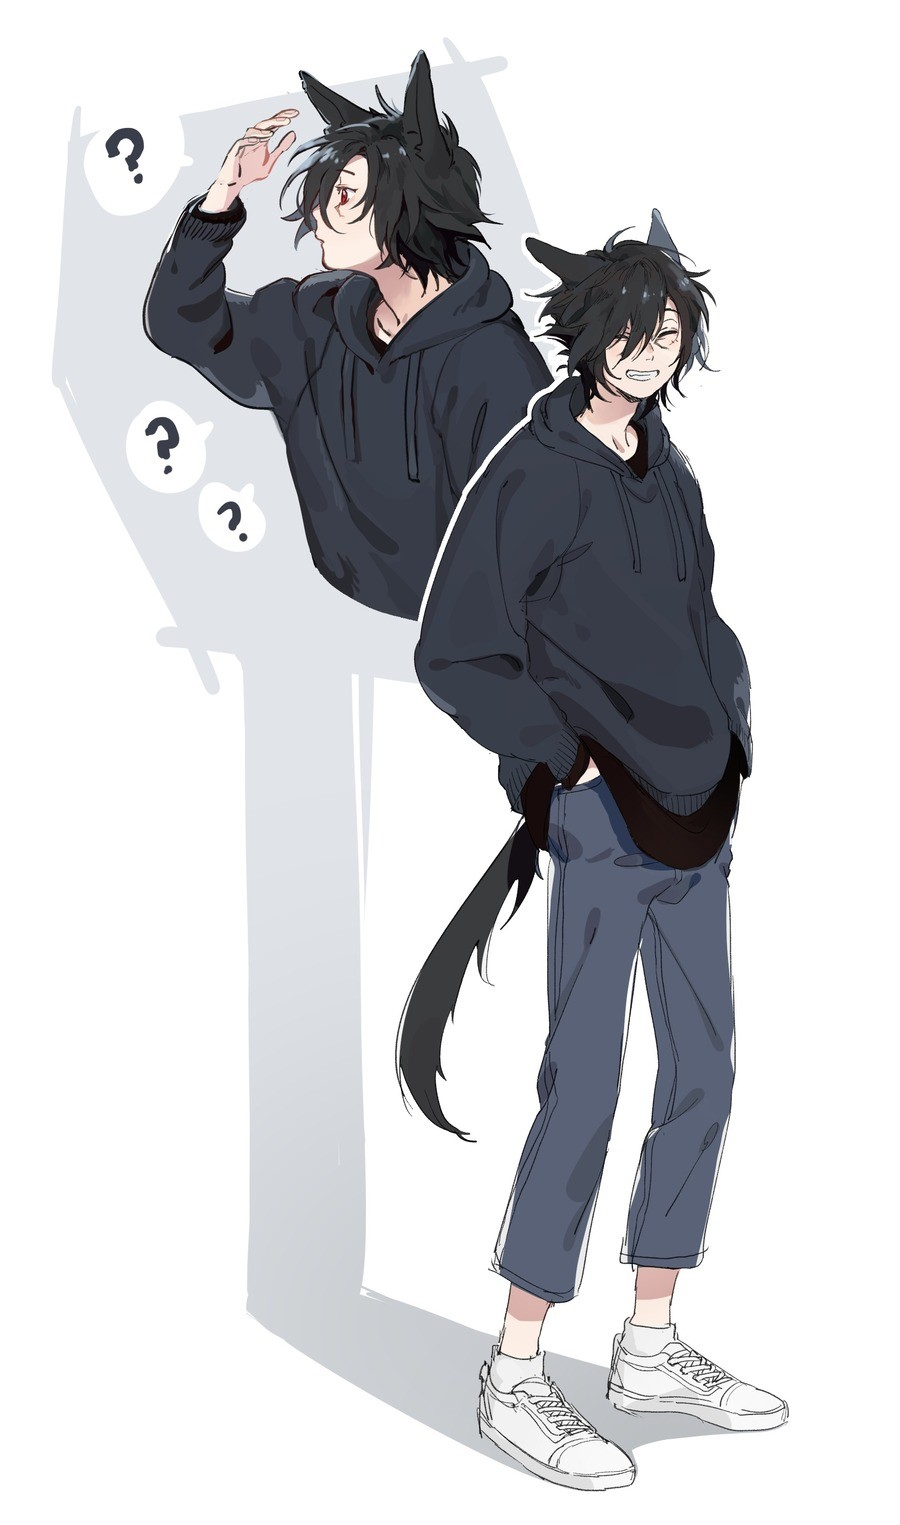 Messy haired cat bf. Source: .